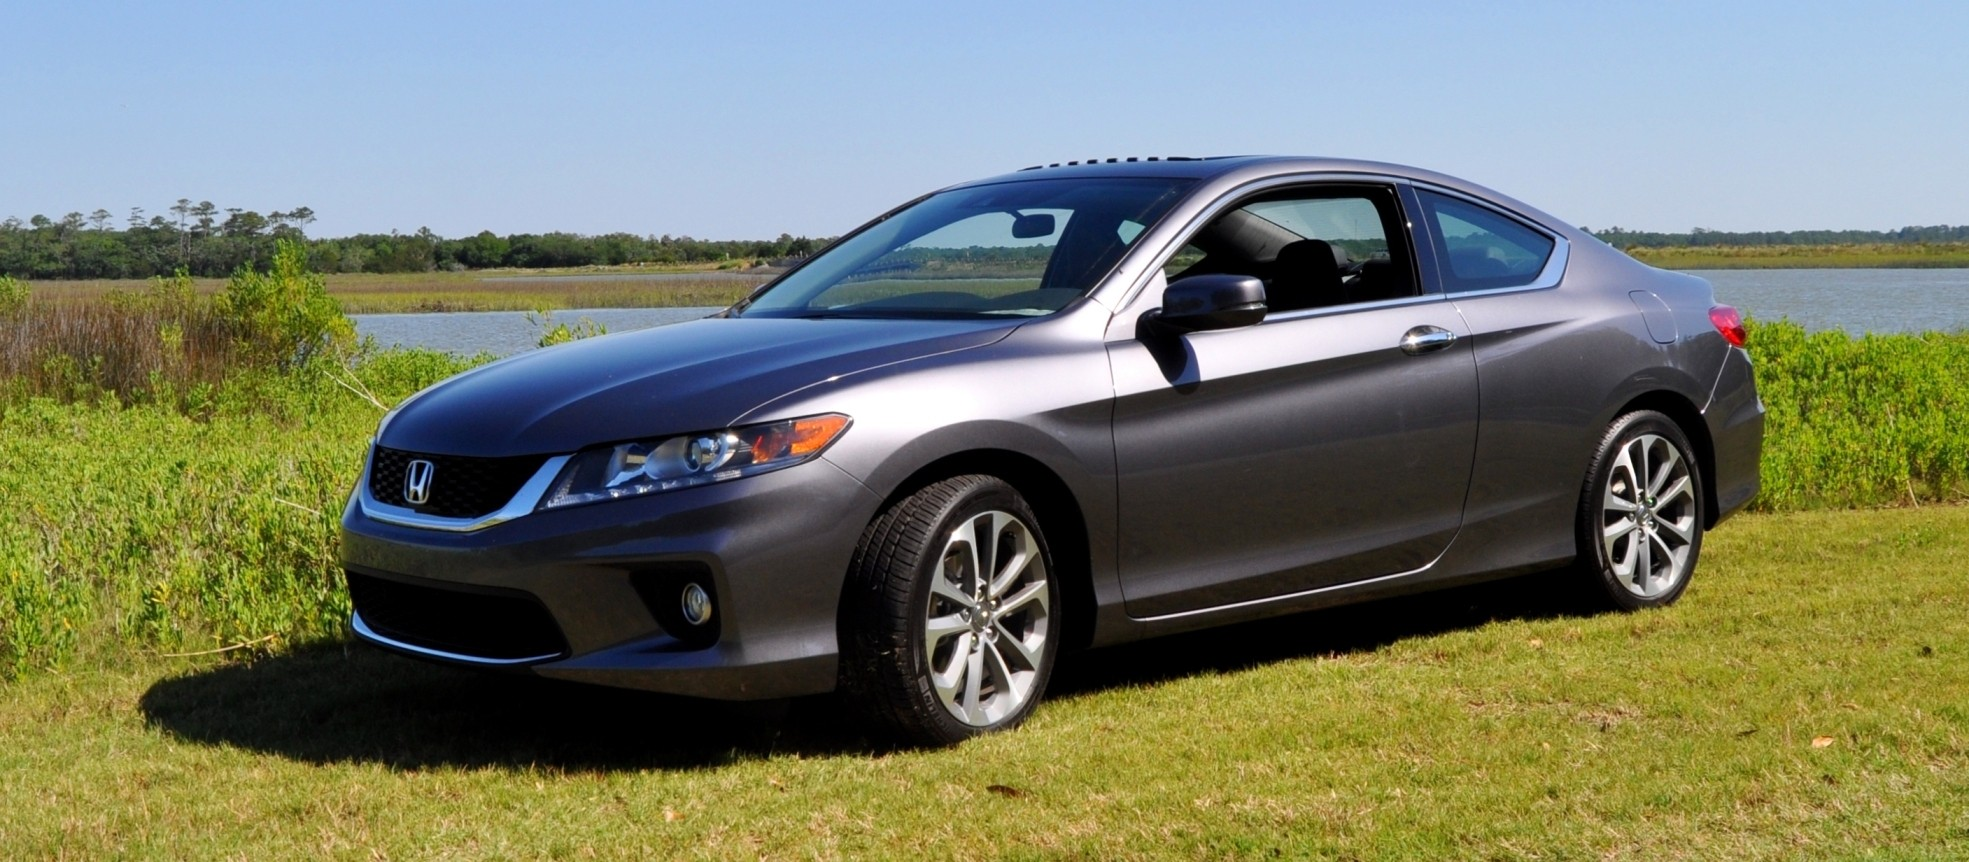 2013 honda accord ex l navi sedan review price specs html for 2014 honda accord sedan